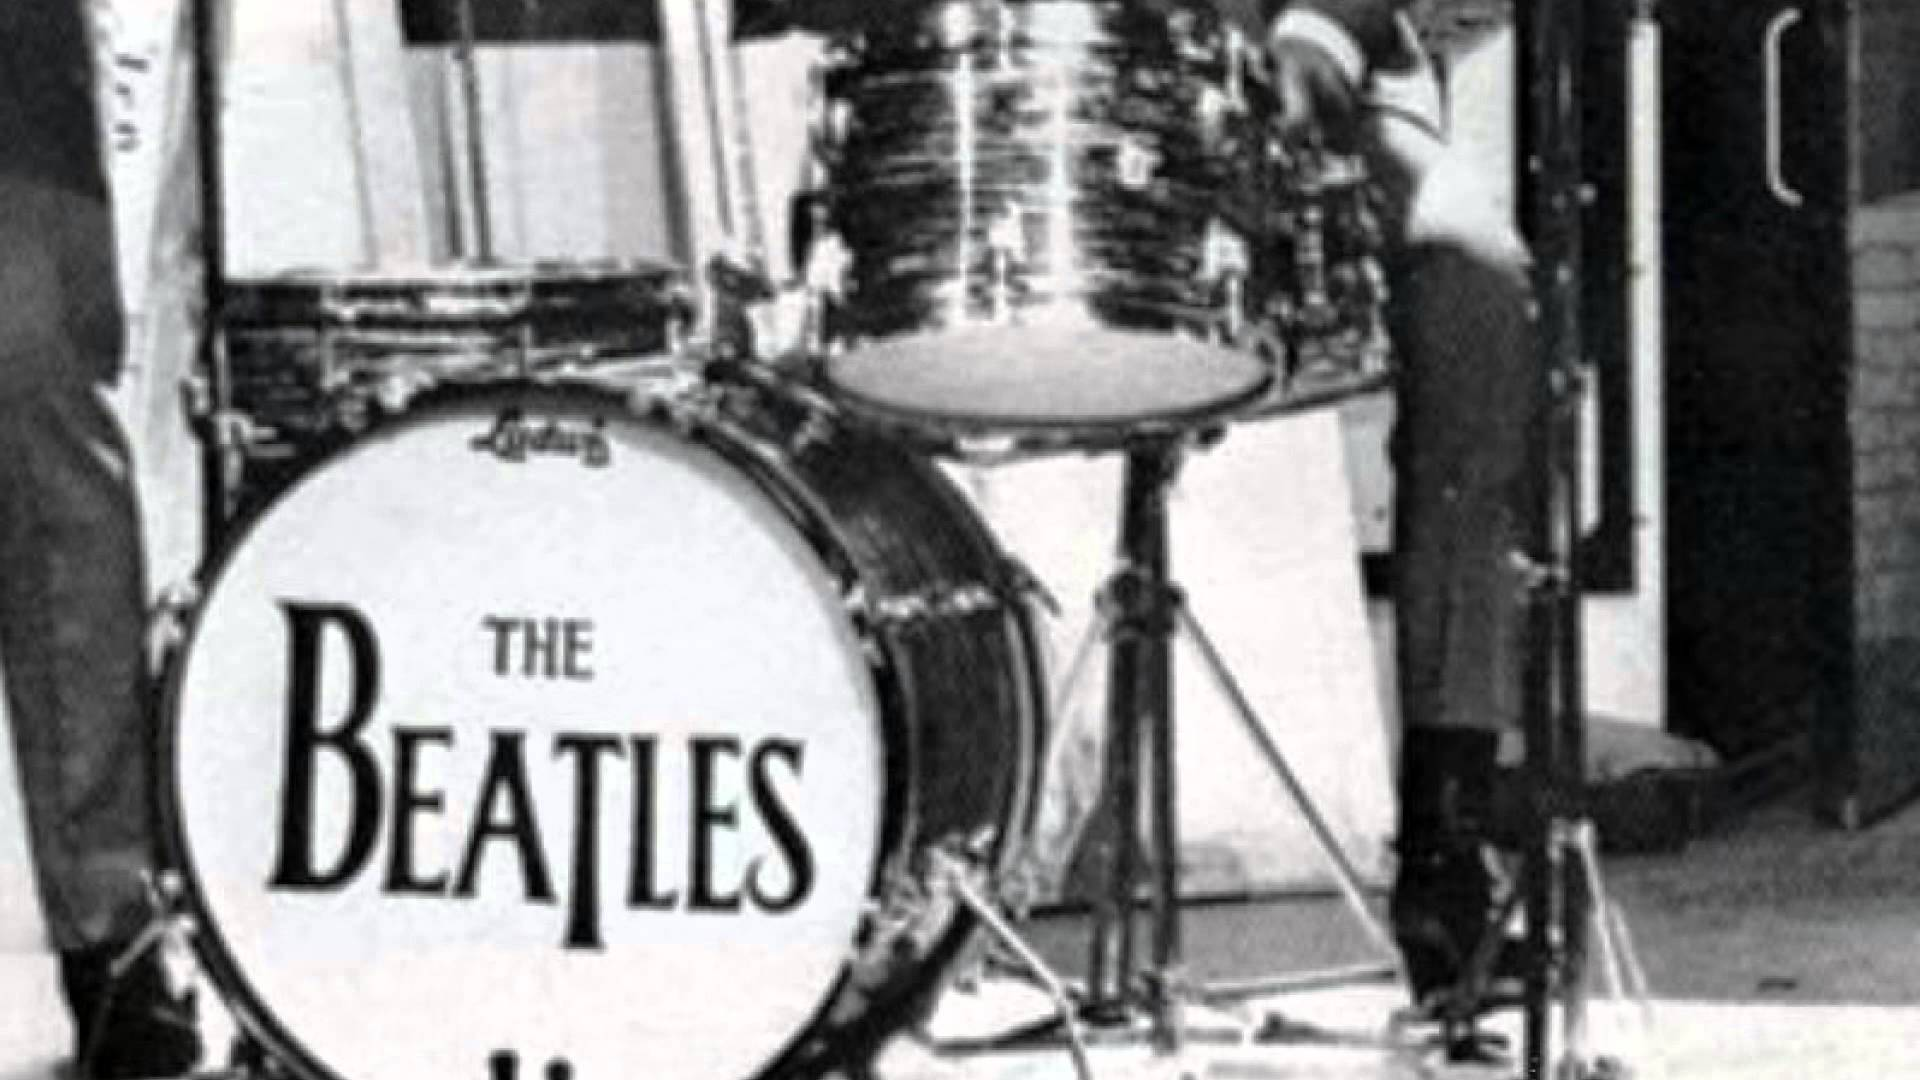 Ringo Starr drum kit sells for £1.46million in US auction ... |Ringo Starr Drums